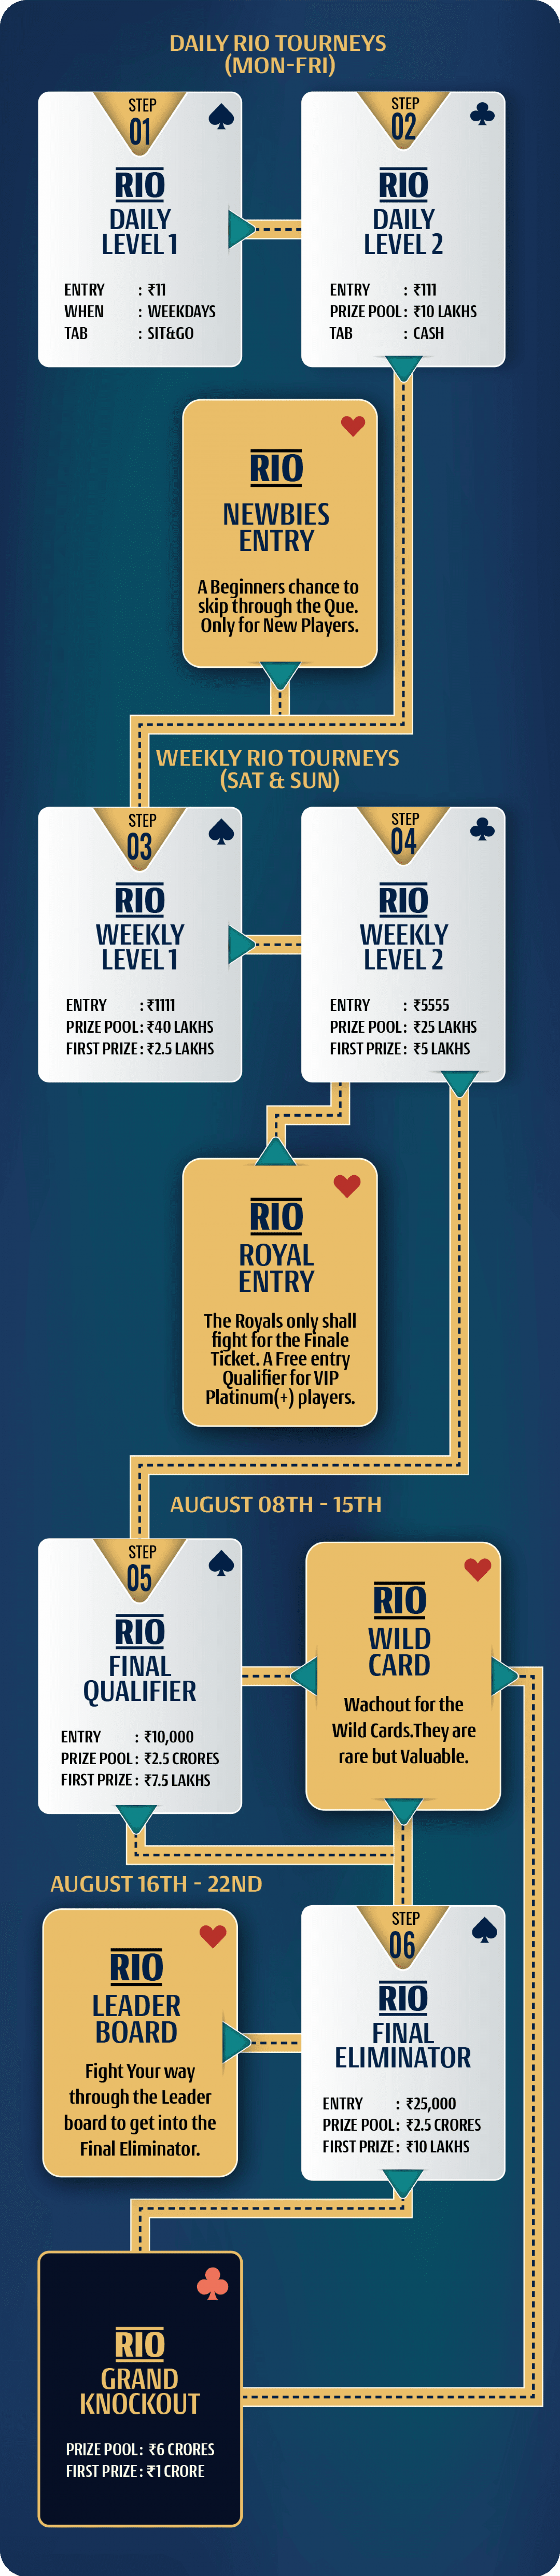 A23 RIO Tourney 2021   Play Rummy Indian Open Tournament Online and Win Real Cash Big Infographic